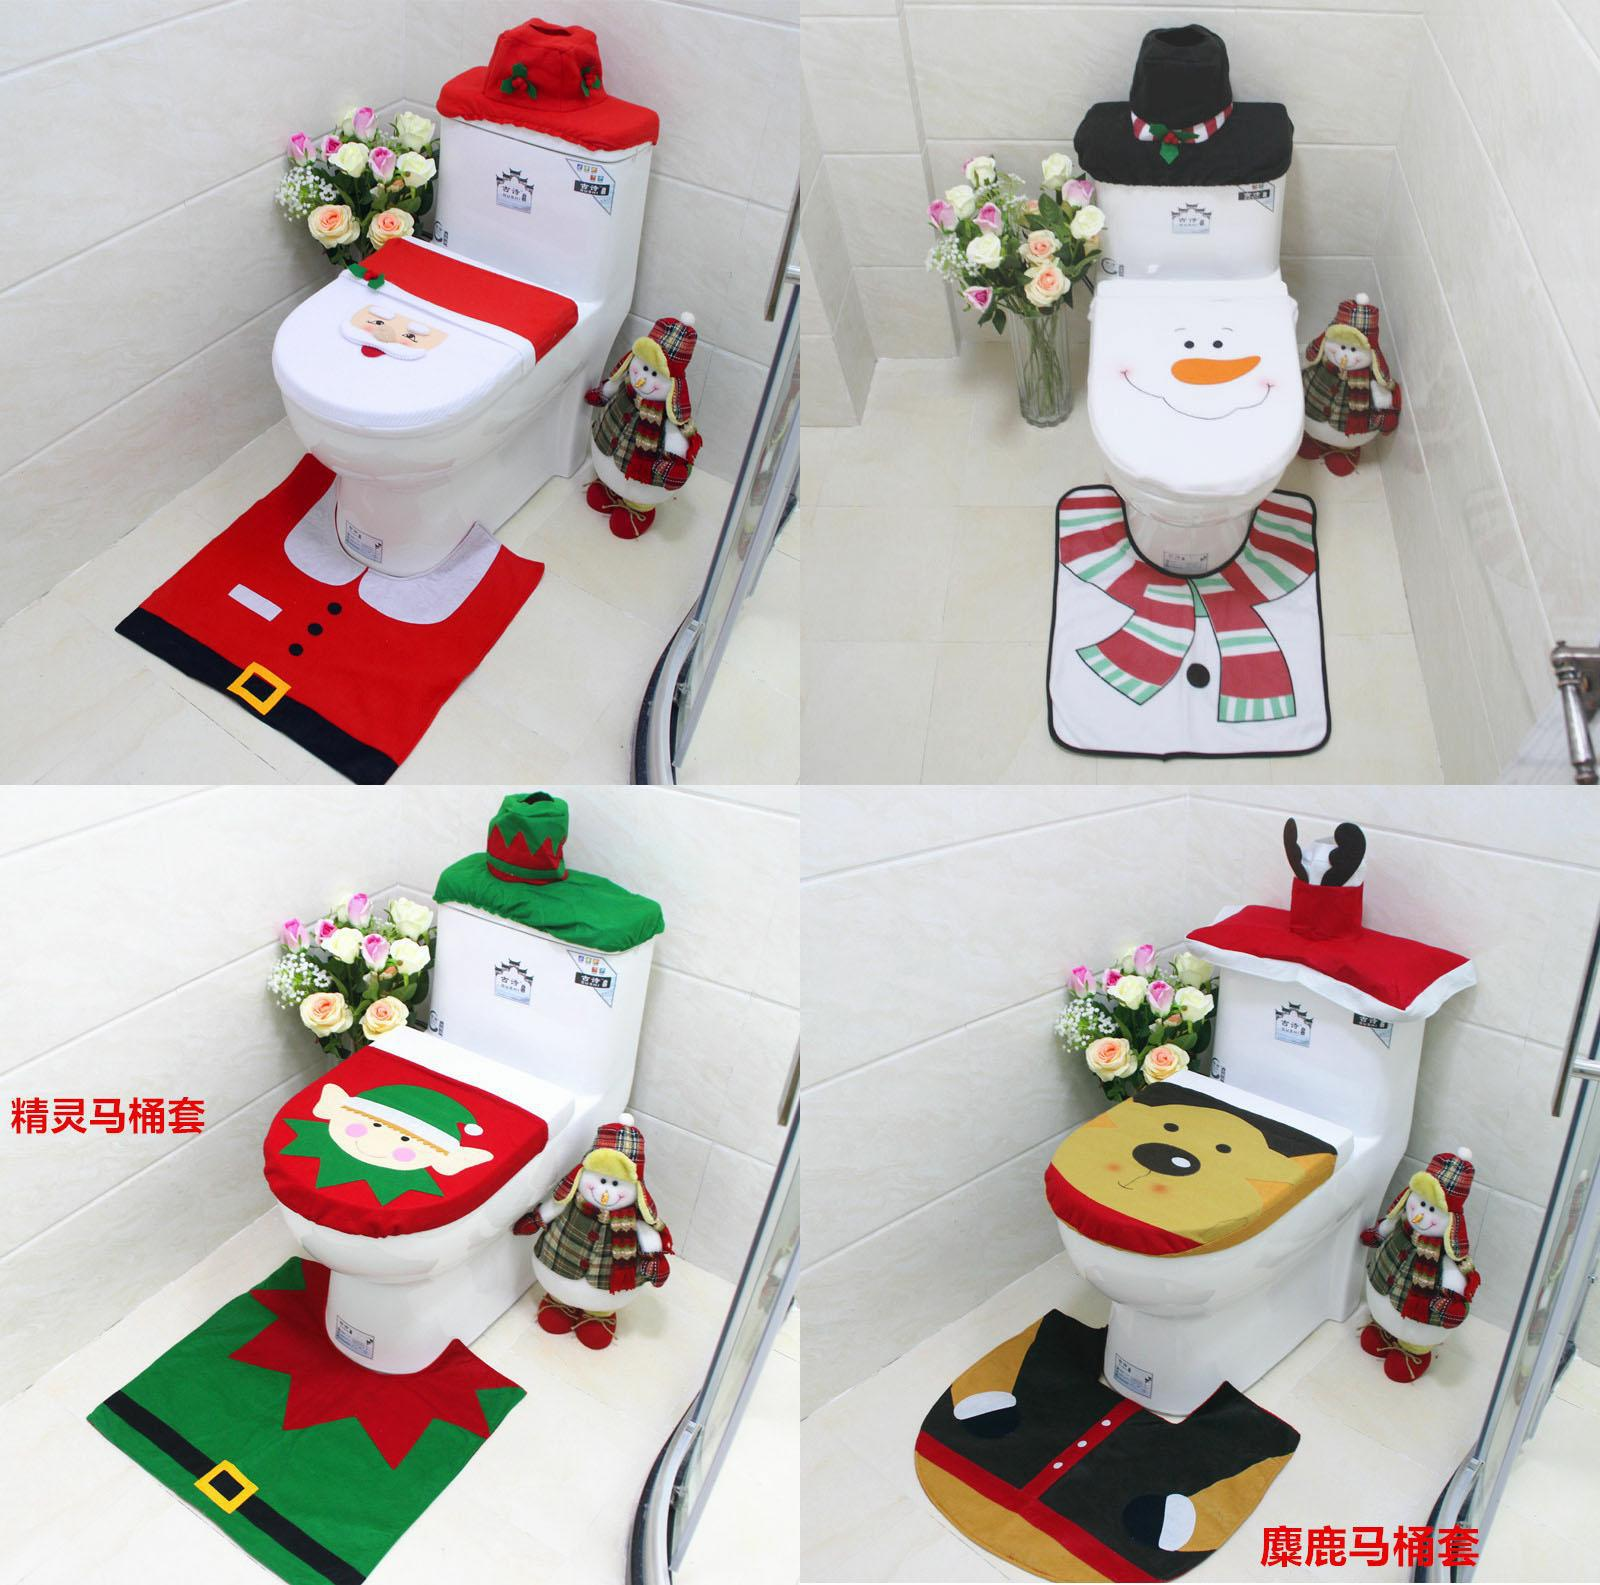 Merry Christmas Toilet Seat /& Cover Santa Claus Bathroom Mat Xmas Home Decor New